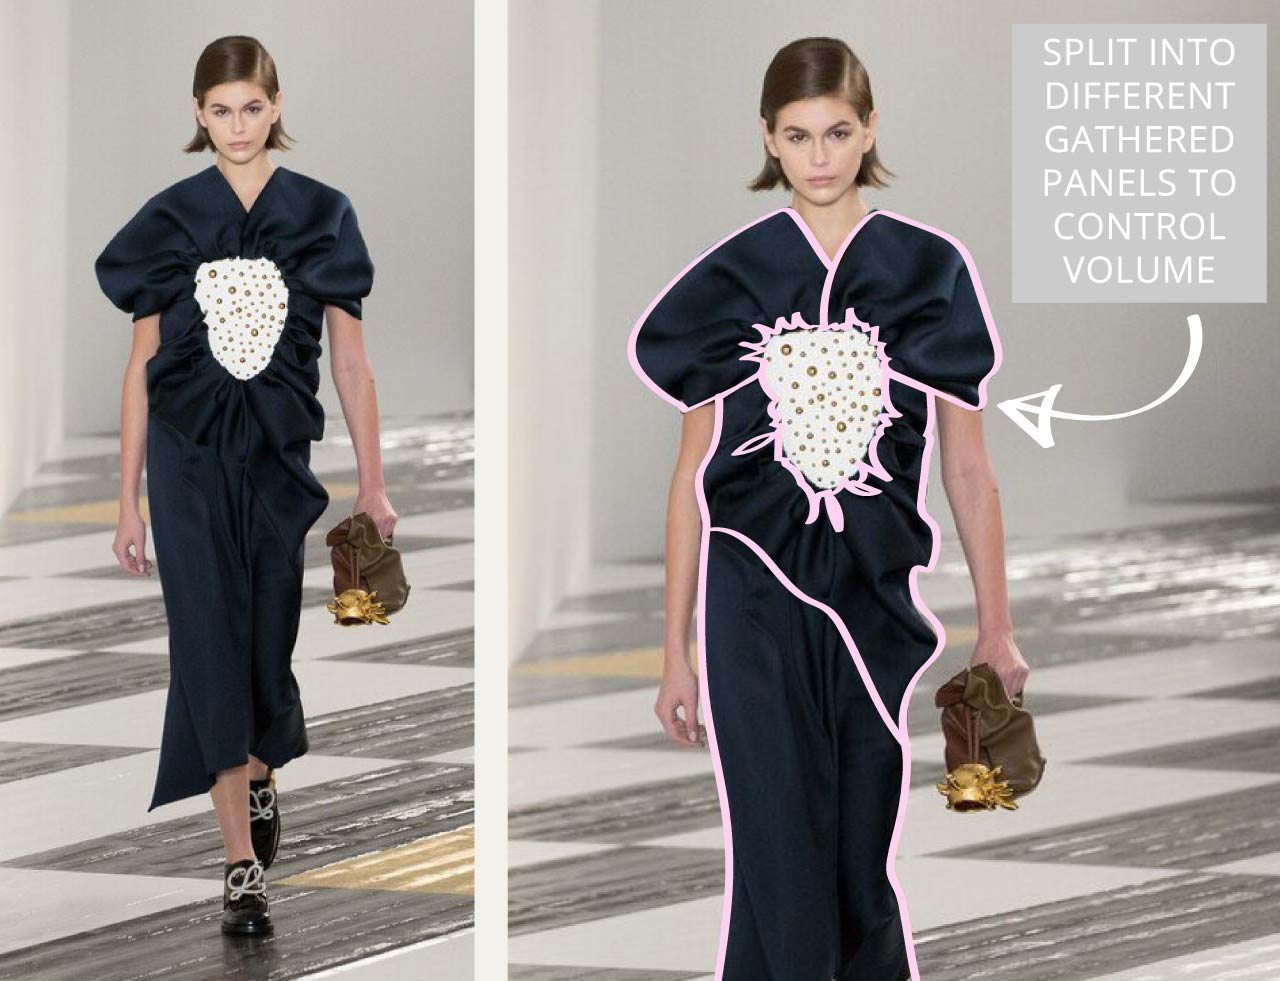 Gathering and Ceramic Plates at Loewe | The Cutting Class. Dress split into different panels to control volume.